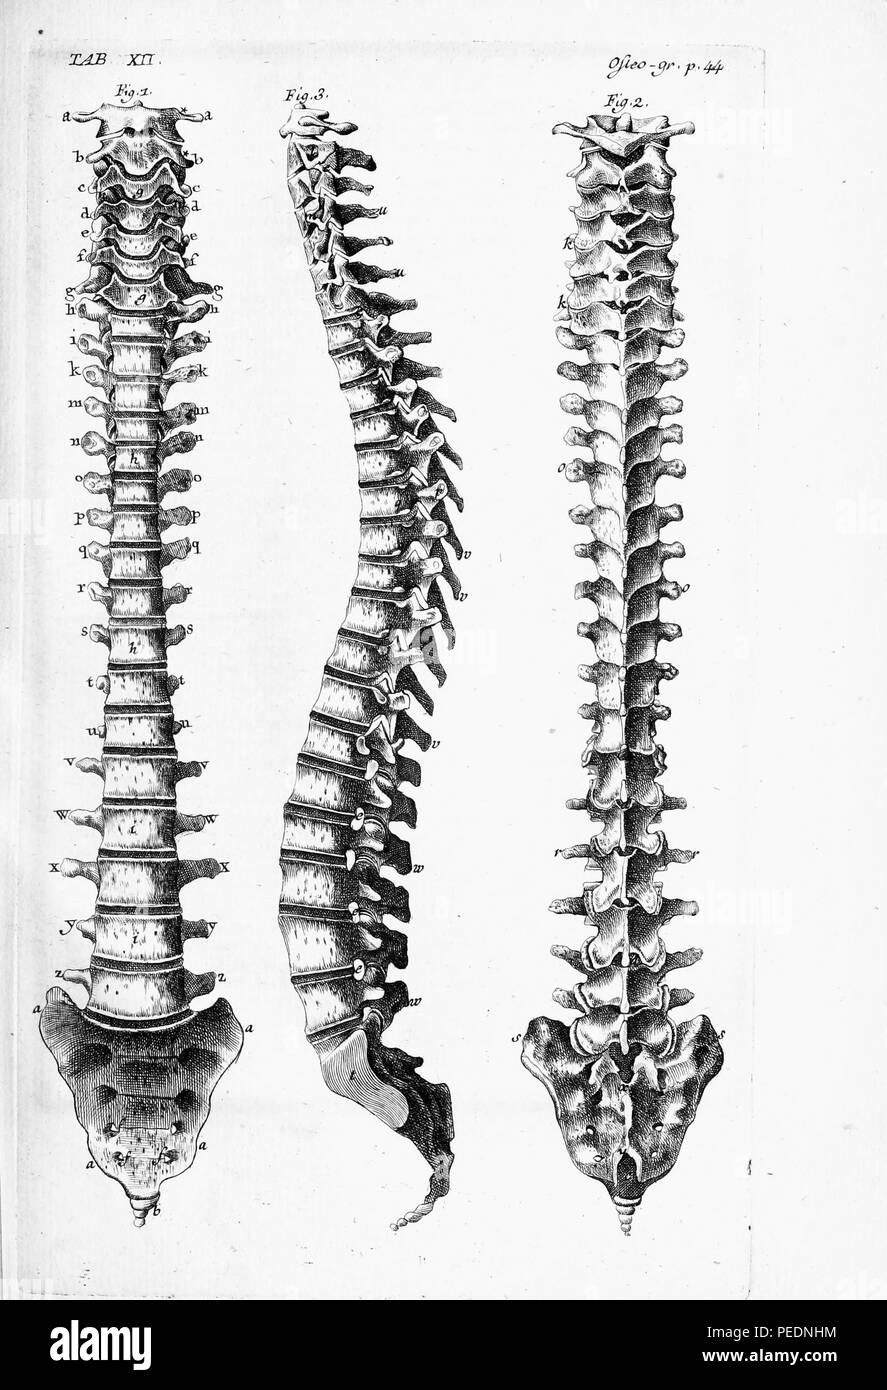 hight resolution of black and white print of the human spine from three angles 1 the front 2 the back and 3 the side with letters indicating individual vertebrae 1825